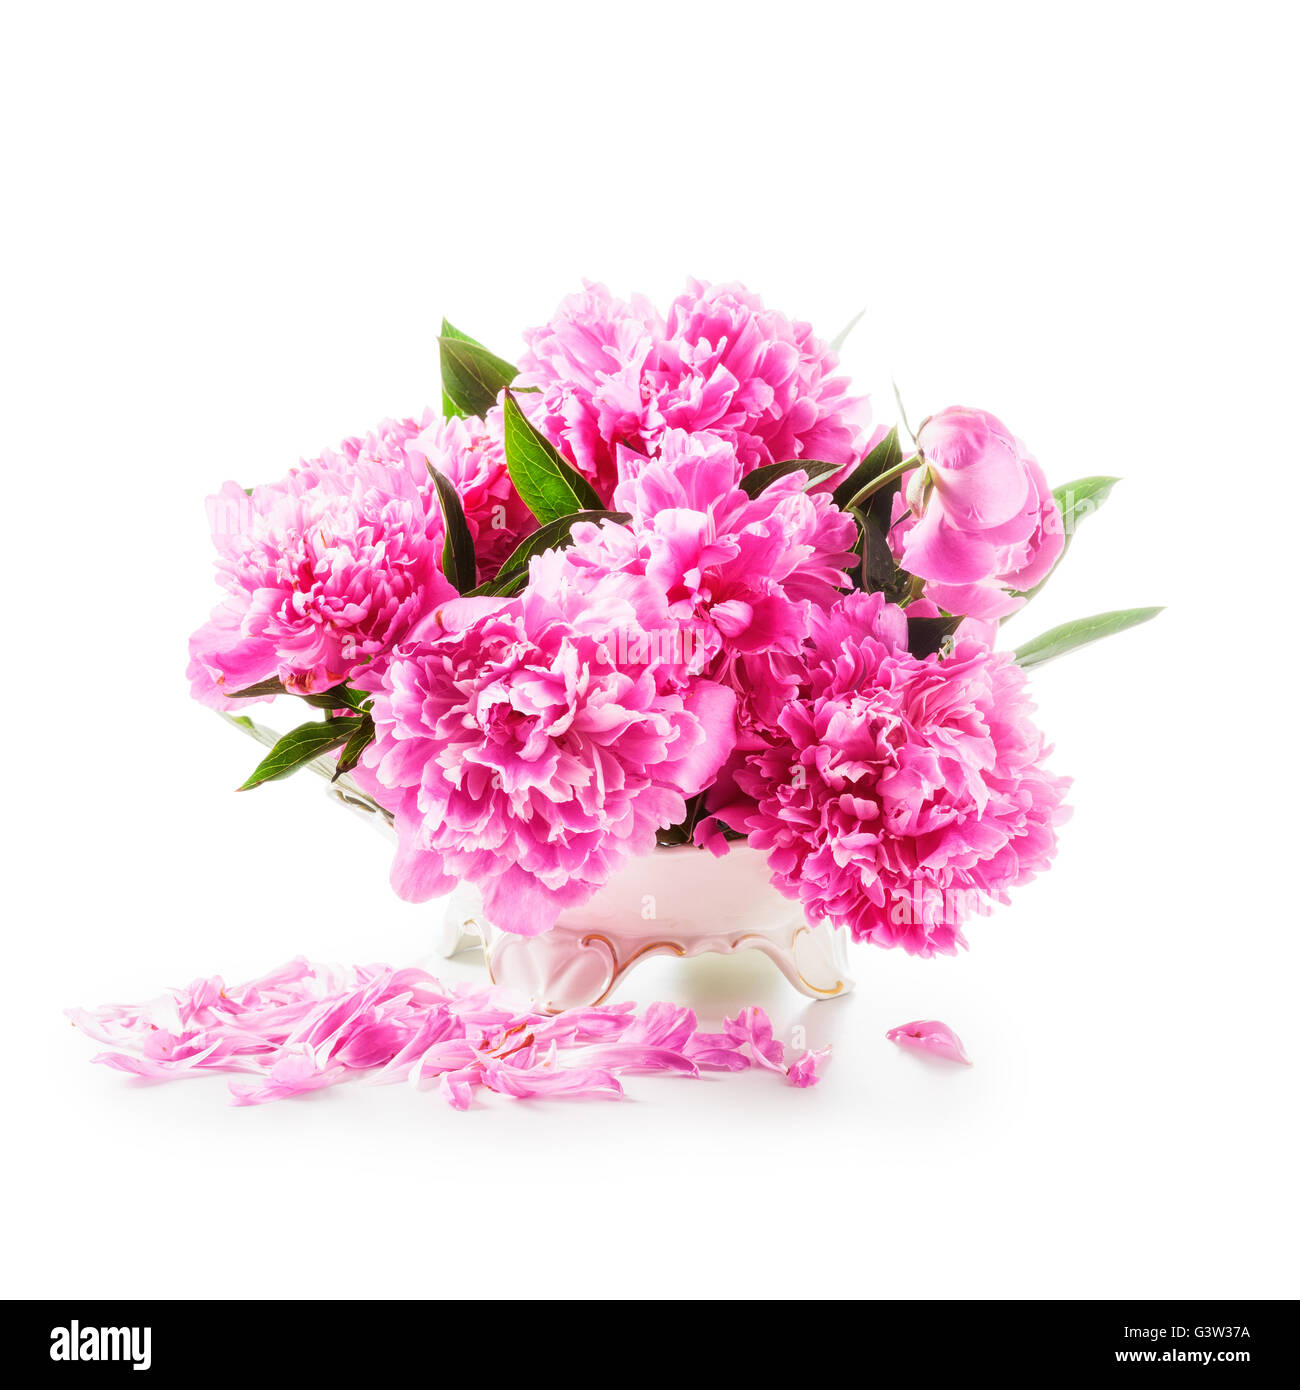 Peony flowers romantic bouquet of pink peonies in retro vase peony flowers romantic bouquet of pink peonies in retro vase isolated on white background clipping path included dhlflorist Images